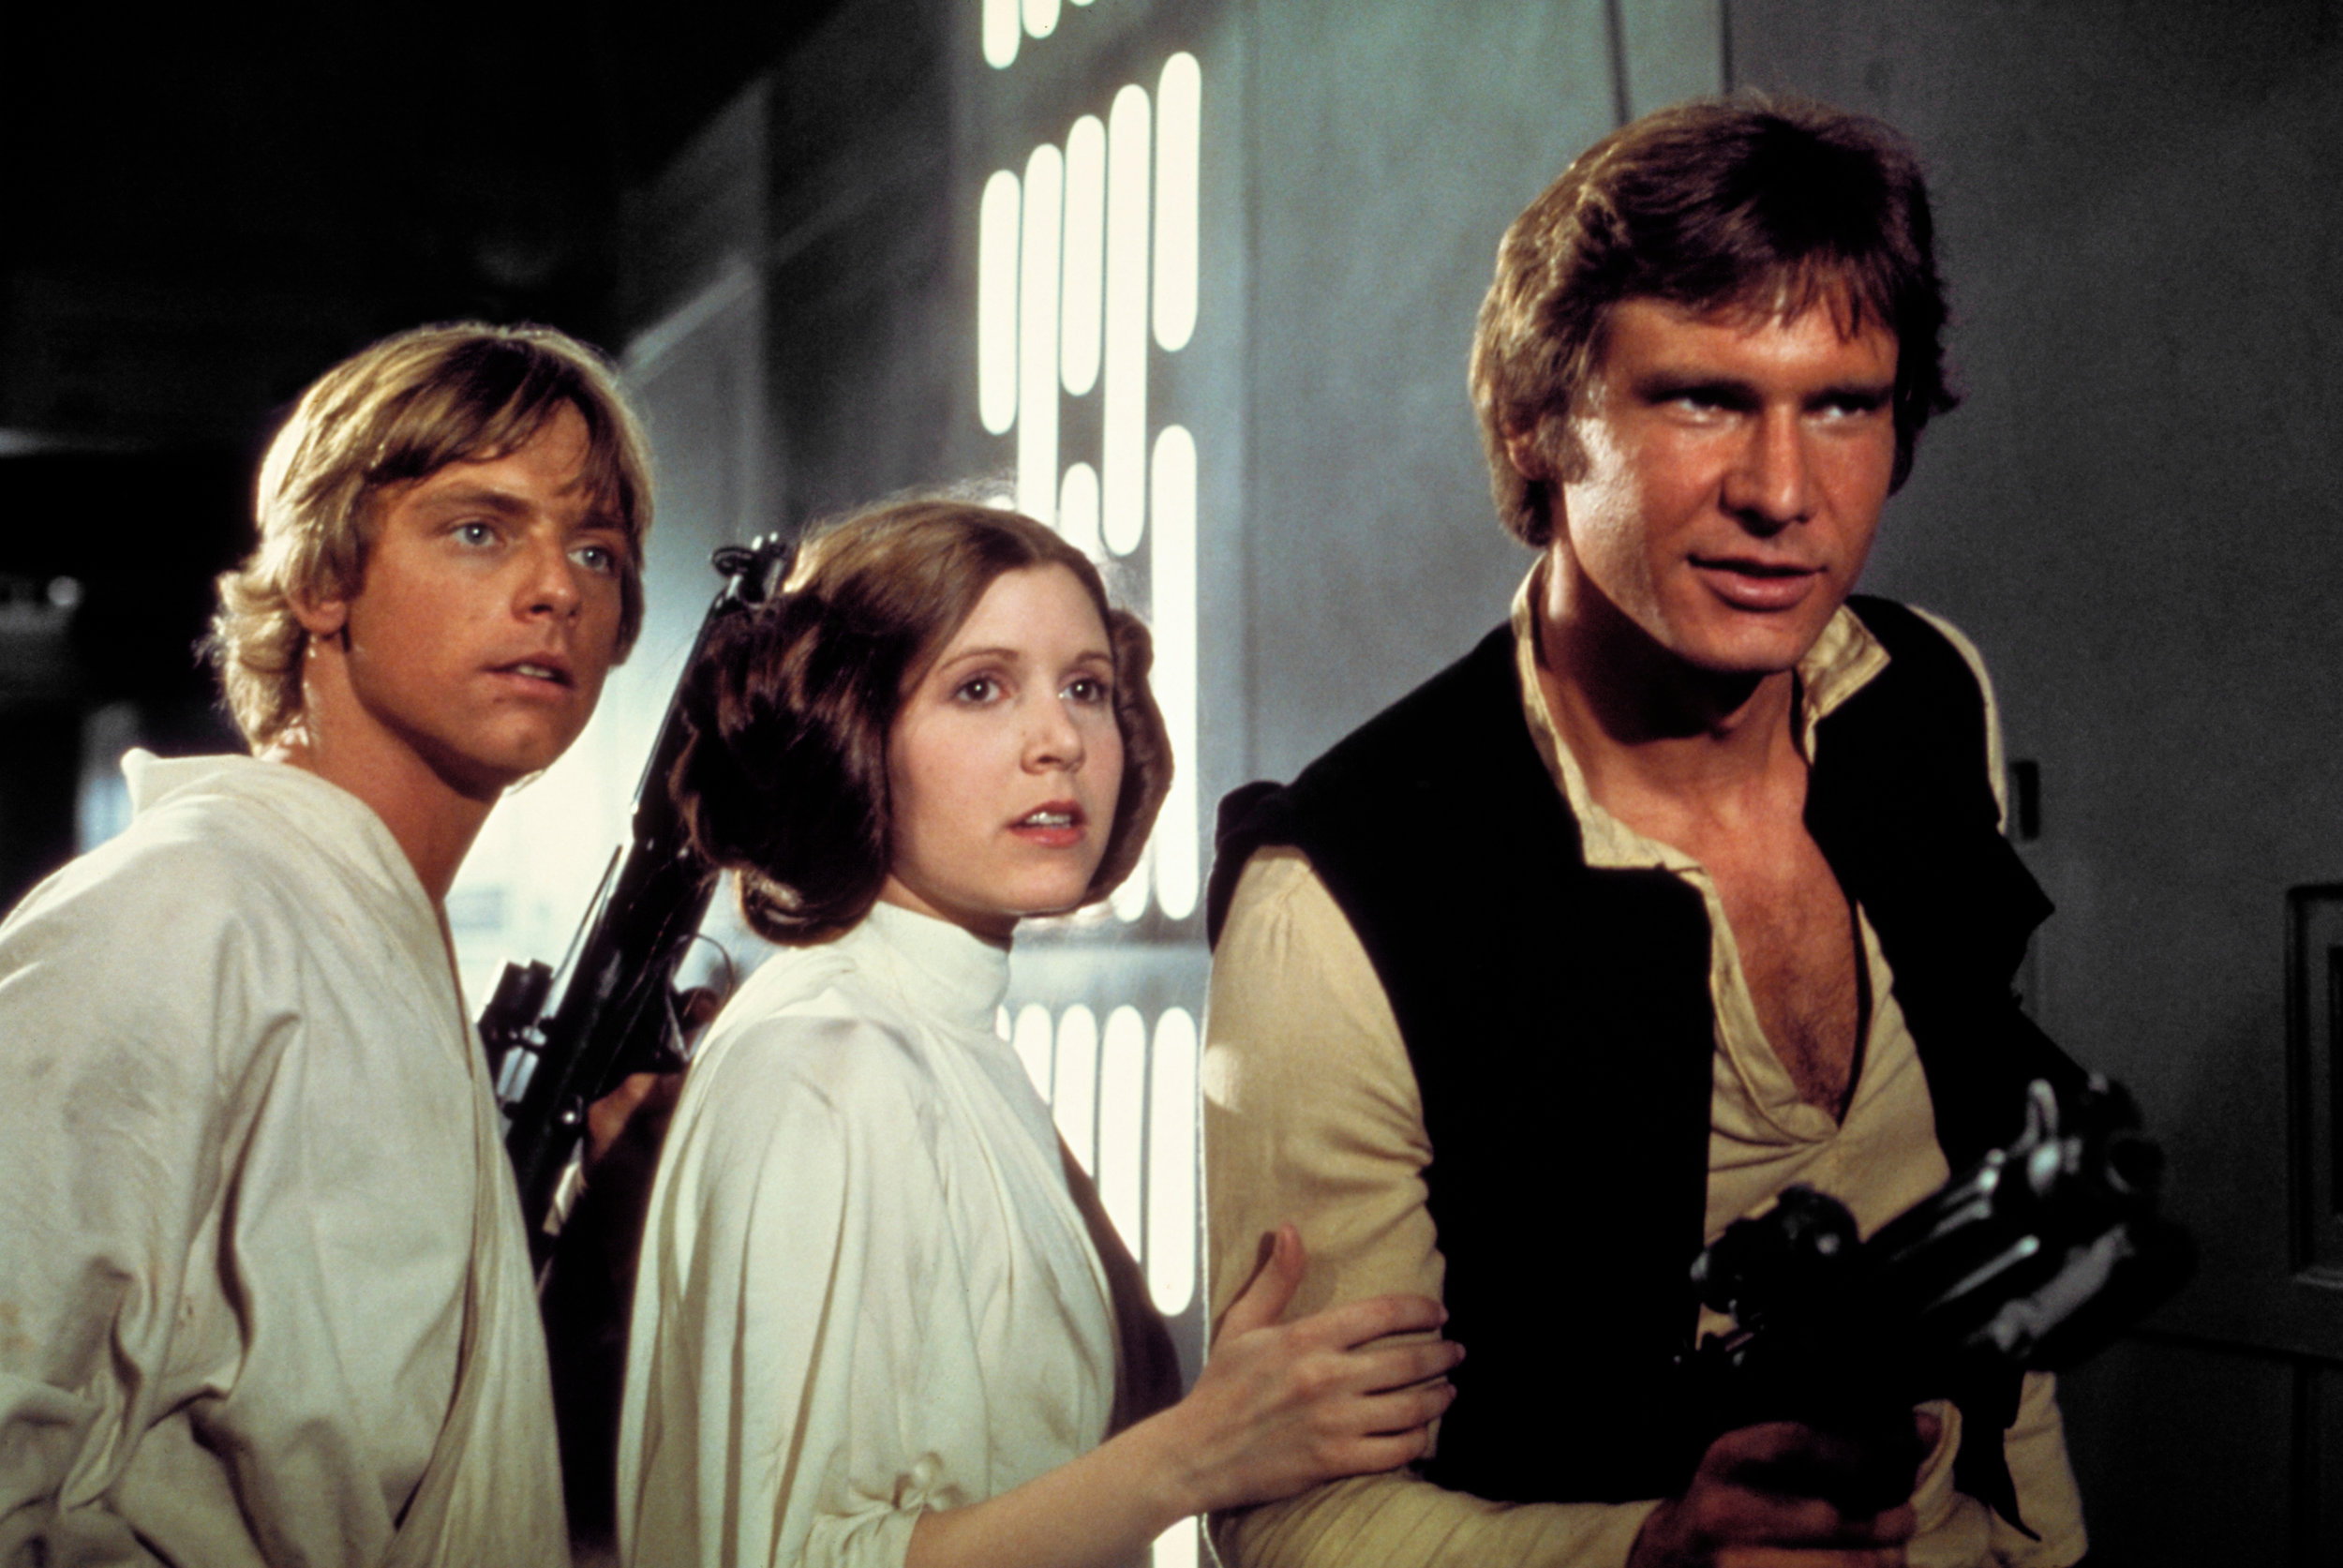 The film has so far spawned eight sequels and prequels, including  Star Wars: The Last Jedi , which received its European premiere at the Royal Albert Hall last month. The film was the biggest hit of 2017 in both the UK and Ireland.